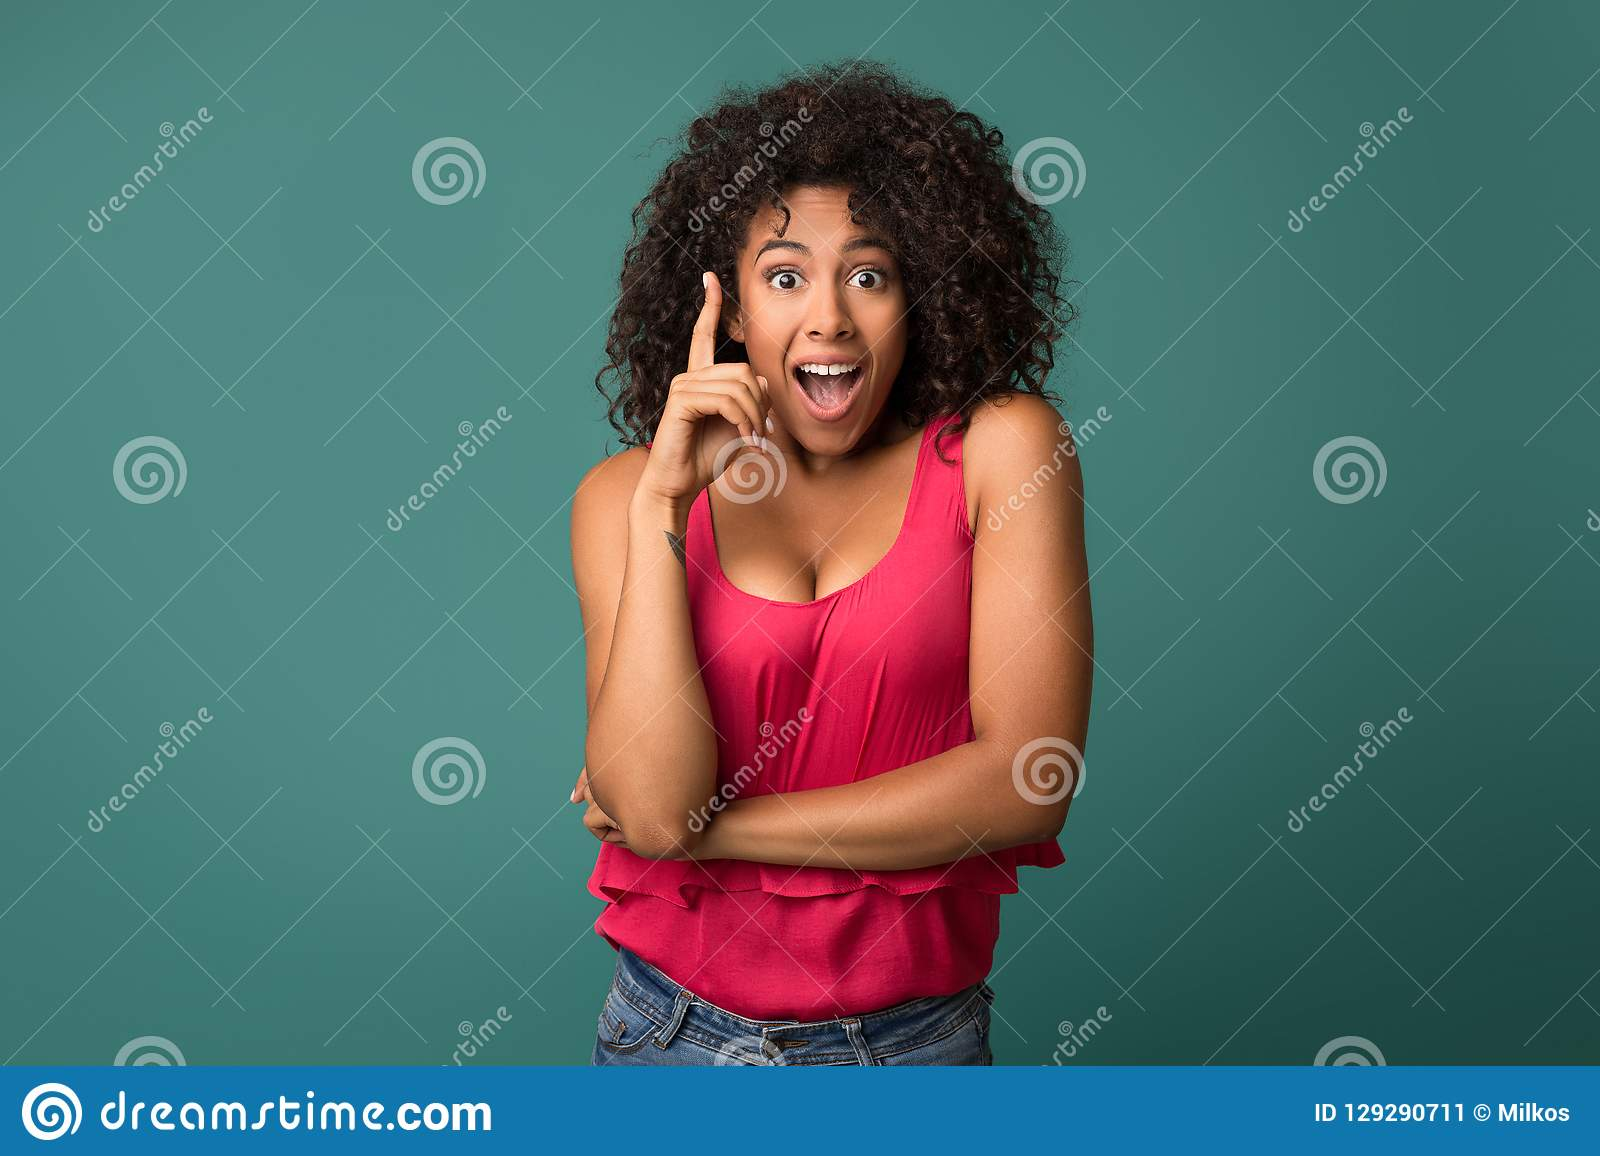 African-american girl having idea against blue background